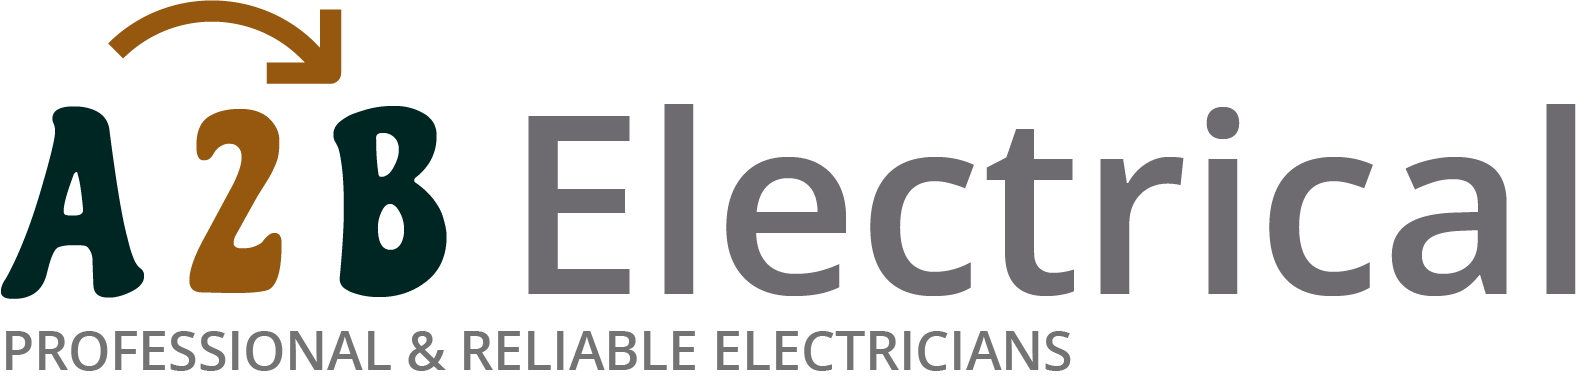 If you have electrical wiring problems in Sevenoaks, we can provide an electrician to have a look for you.